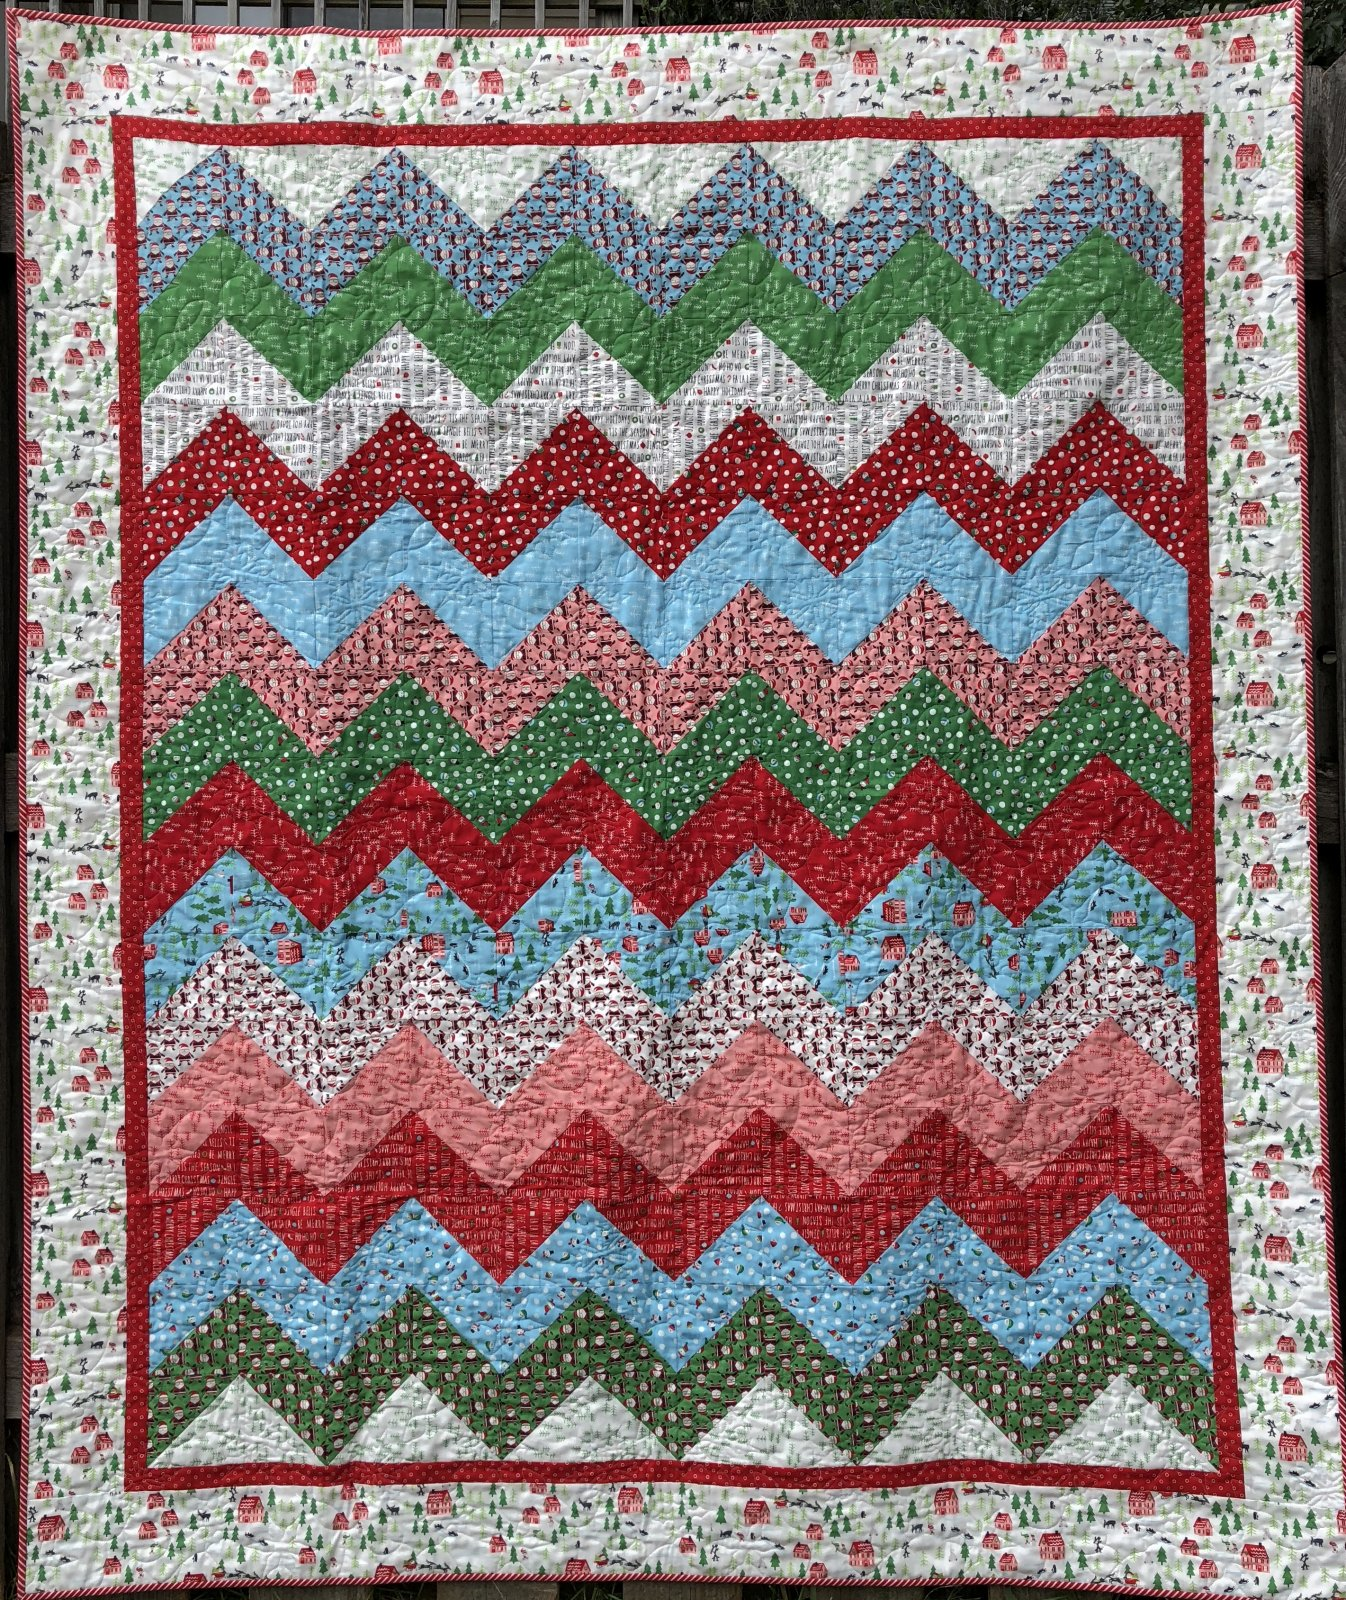 The North Pole Grandma's Rick Rack Quilt Kit by Quilted Moose